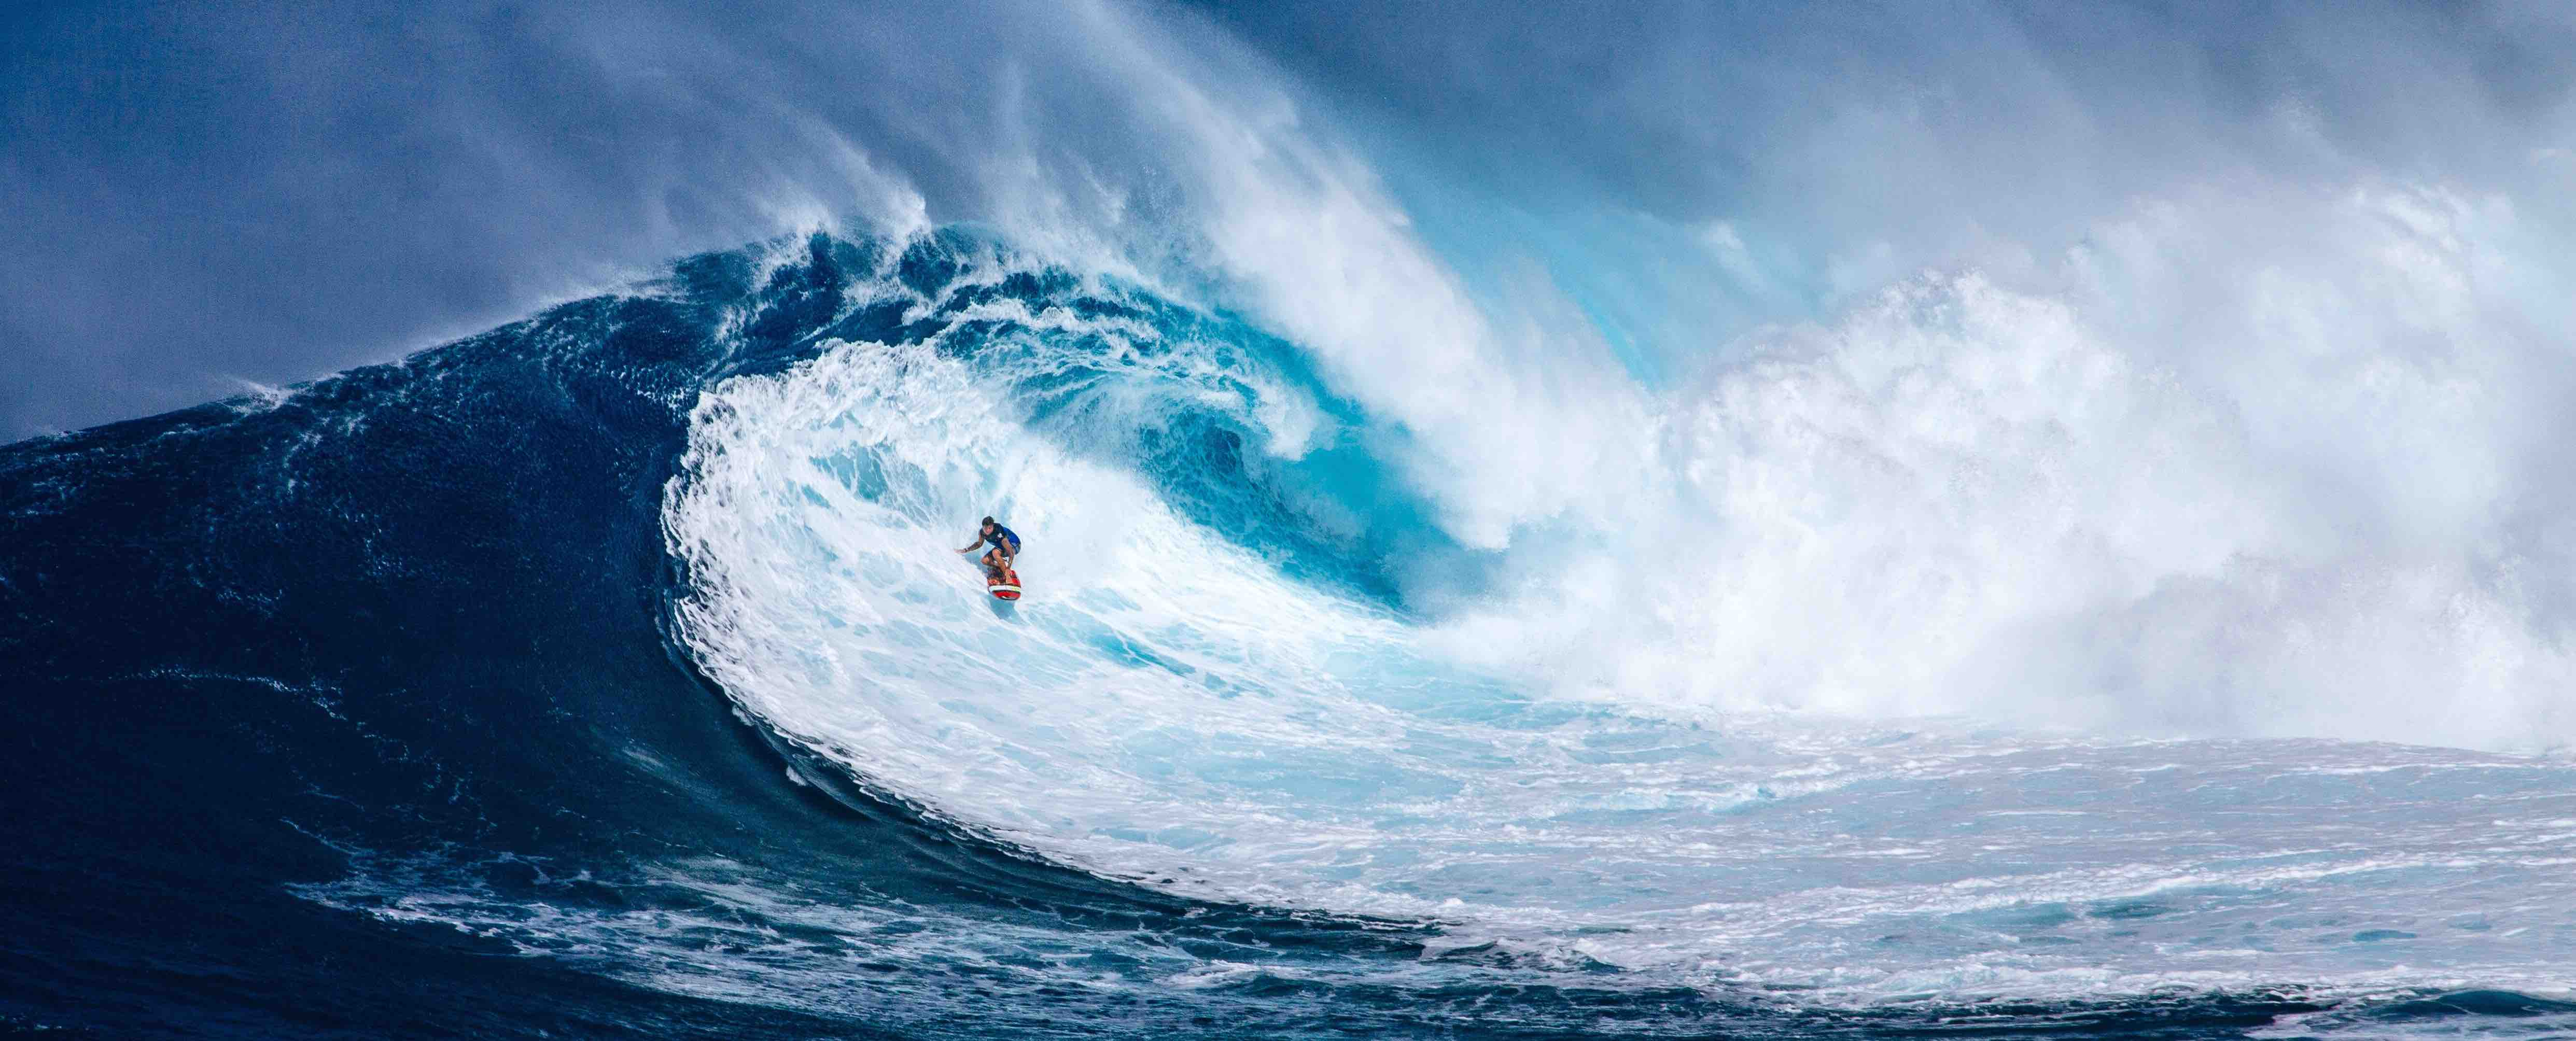 Verification 3.0: Grab Your Surfboards, the Next Big Wave is Coming